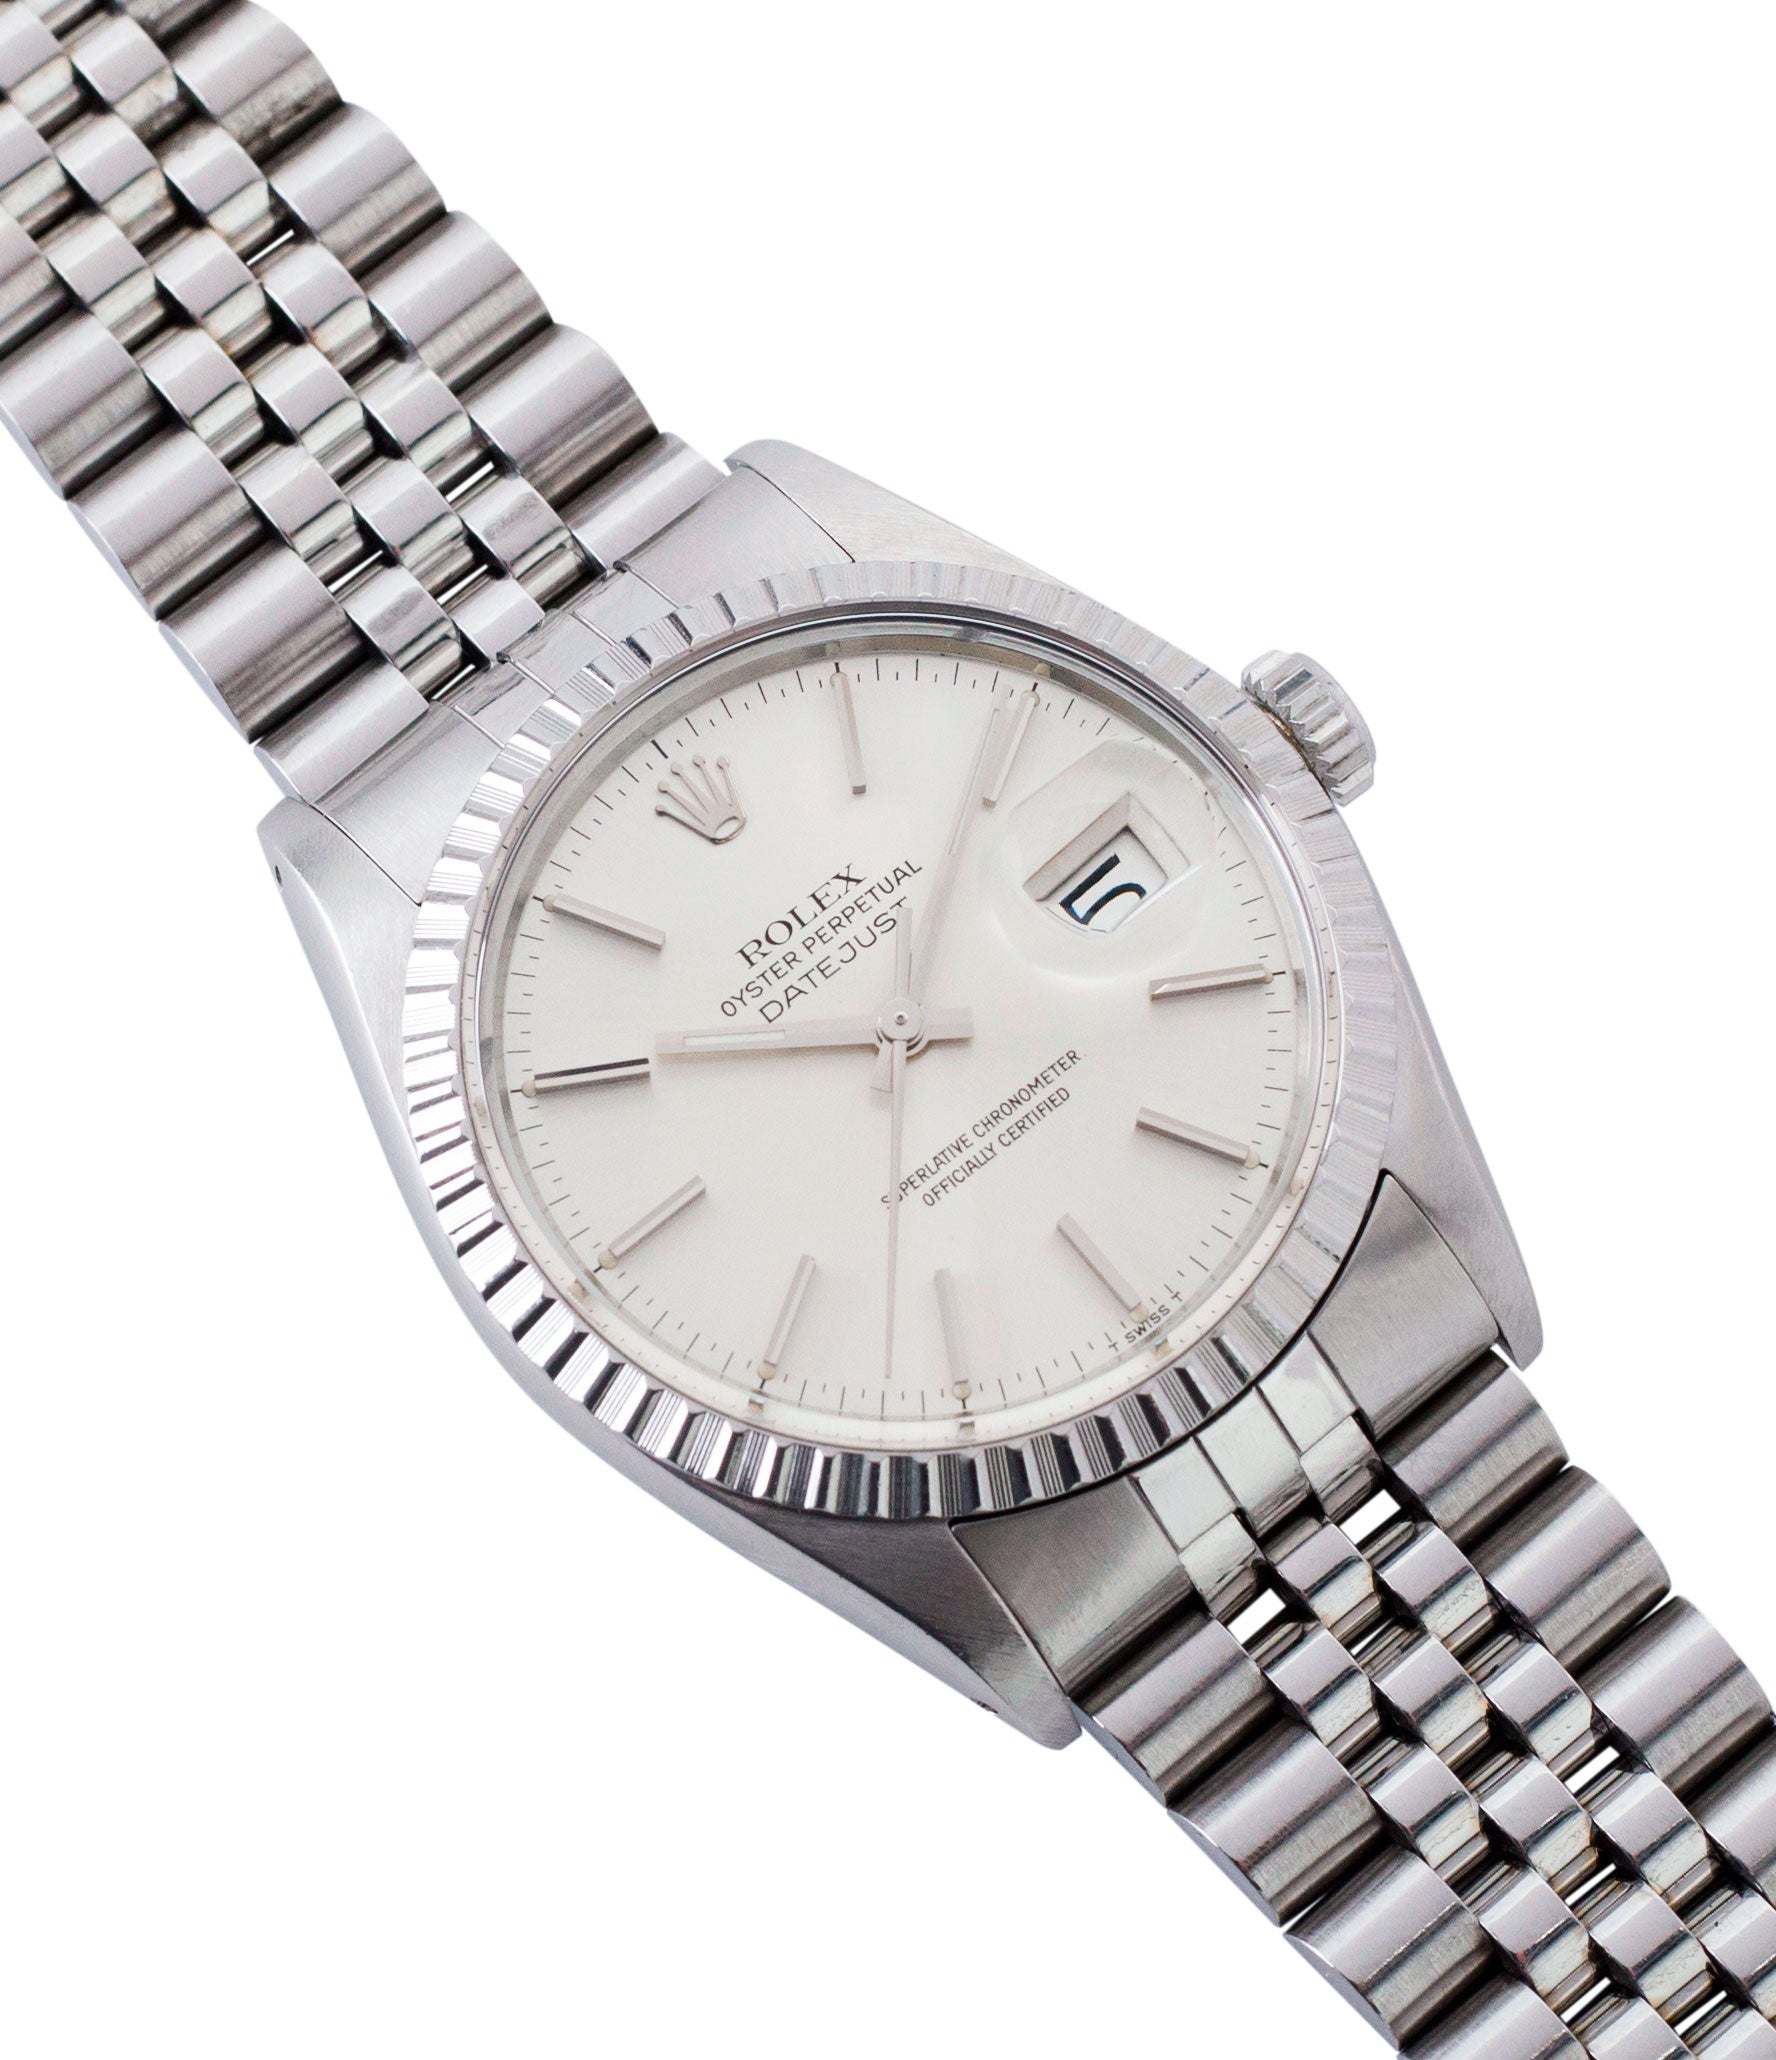 selling vintage full set Rolex Oyster Perpetual Datejust 16030 steel automatic silver dial watch Jubilee bracelet for sale online at A Collected Man London UK vintage watch specialist